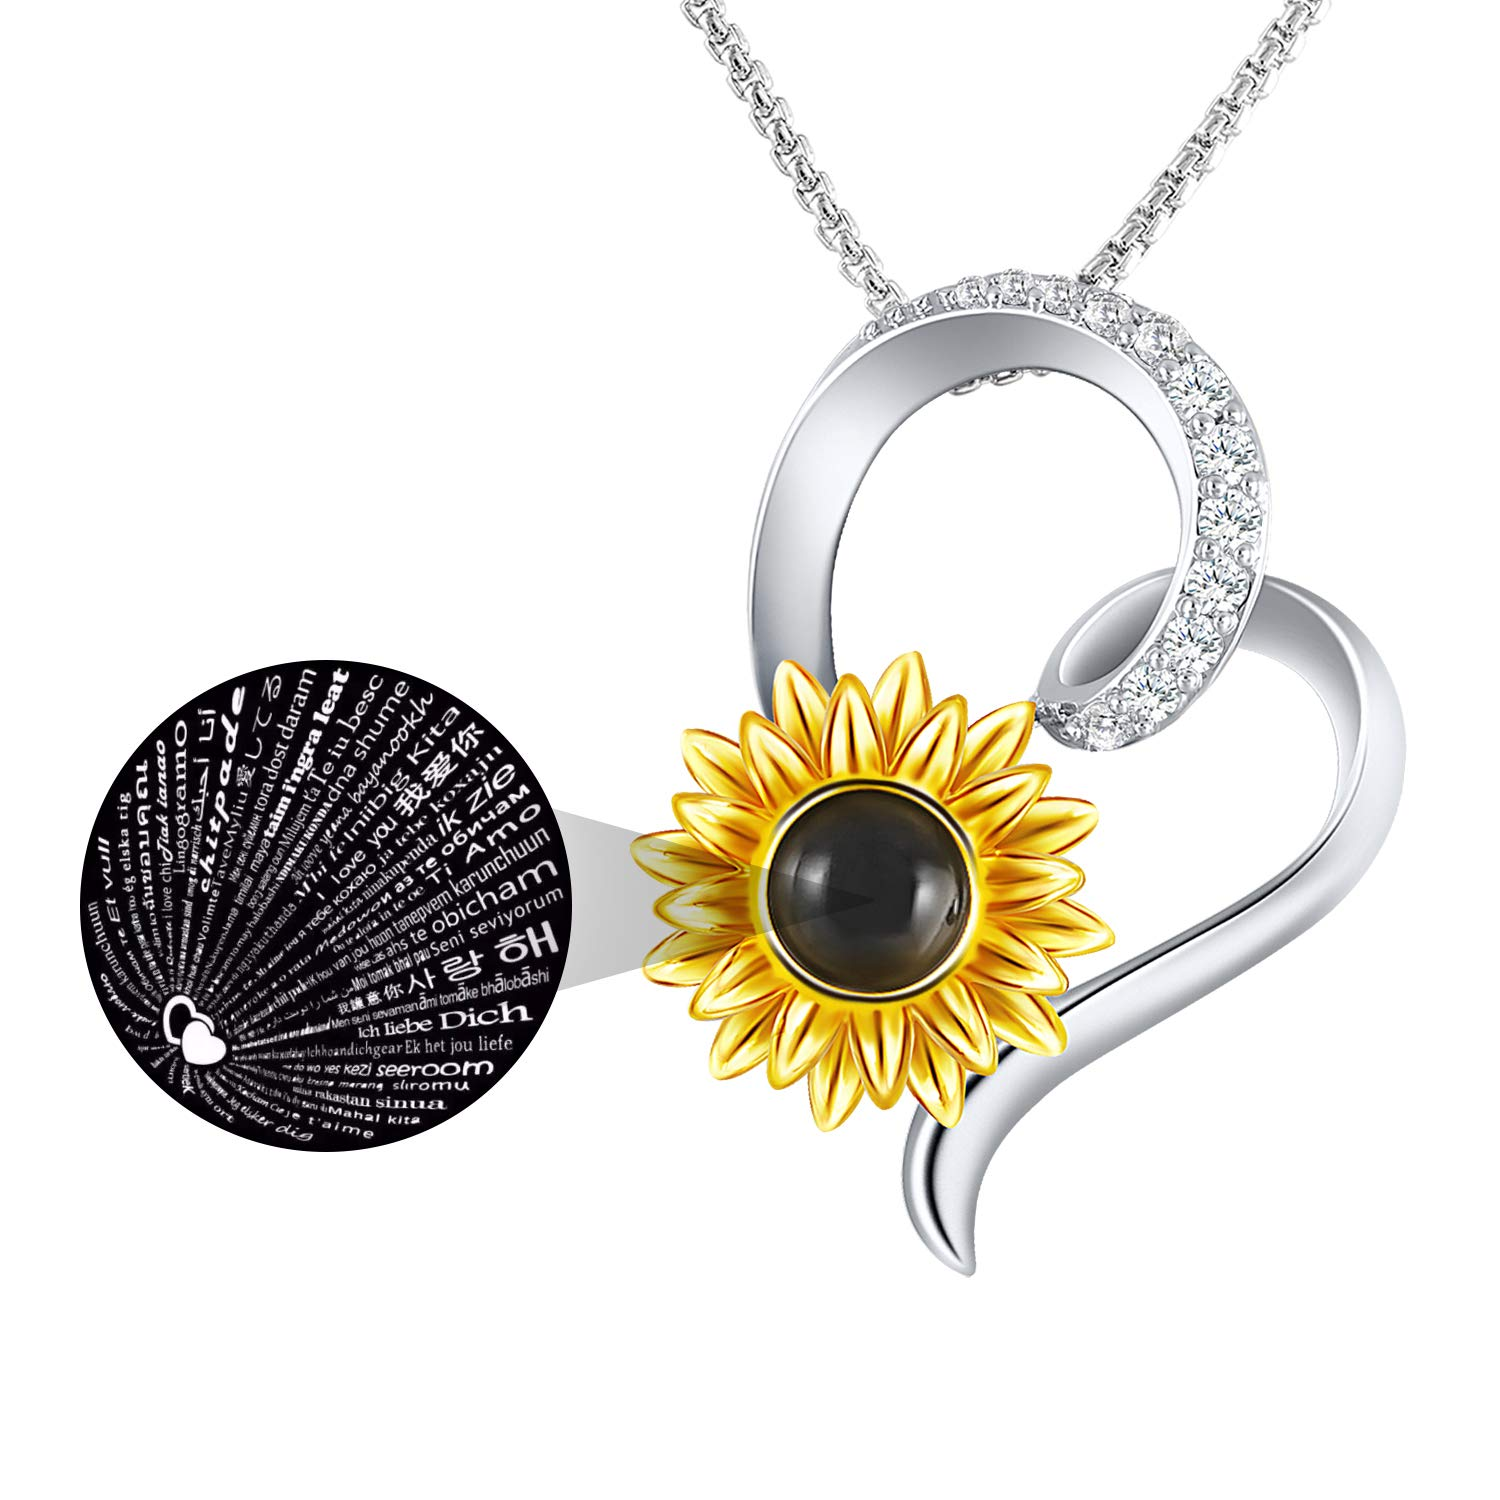 SNZM Heart Necklace for Women -You are My Sunshine Sunflower Pendant Necklace Love Christmas Birthday Jewelry Gifts for Mom Girlfriend